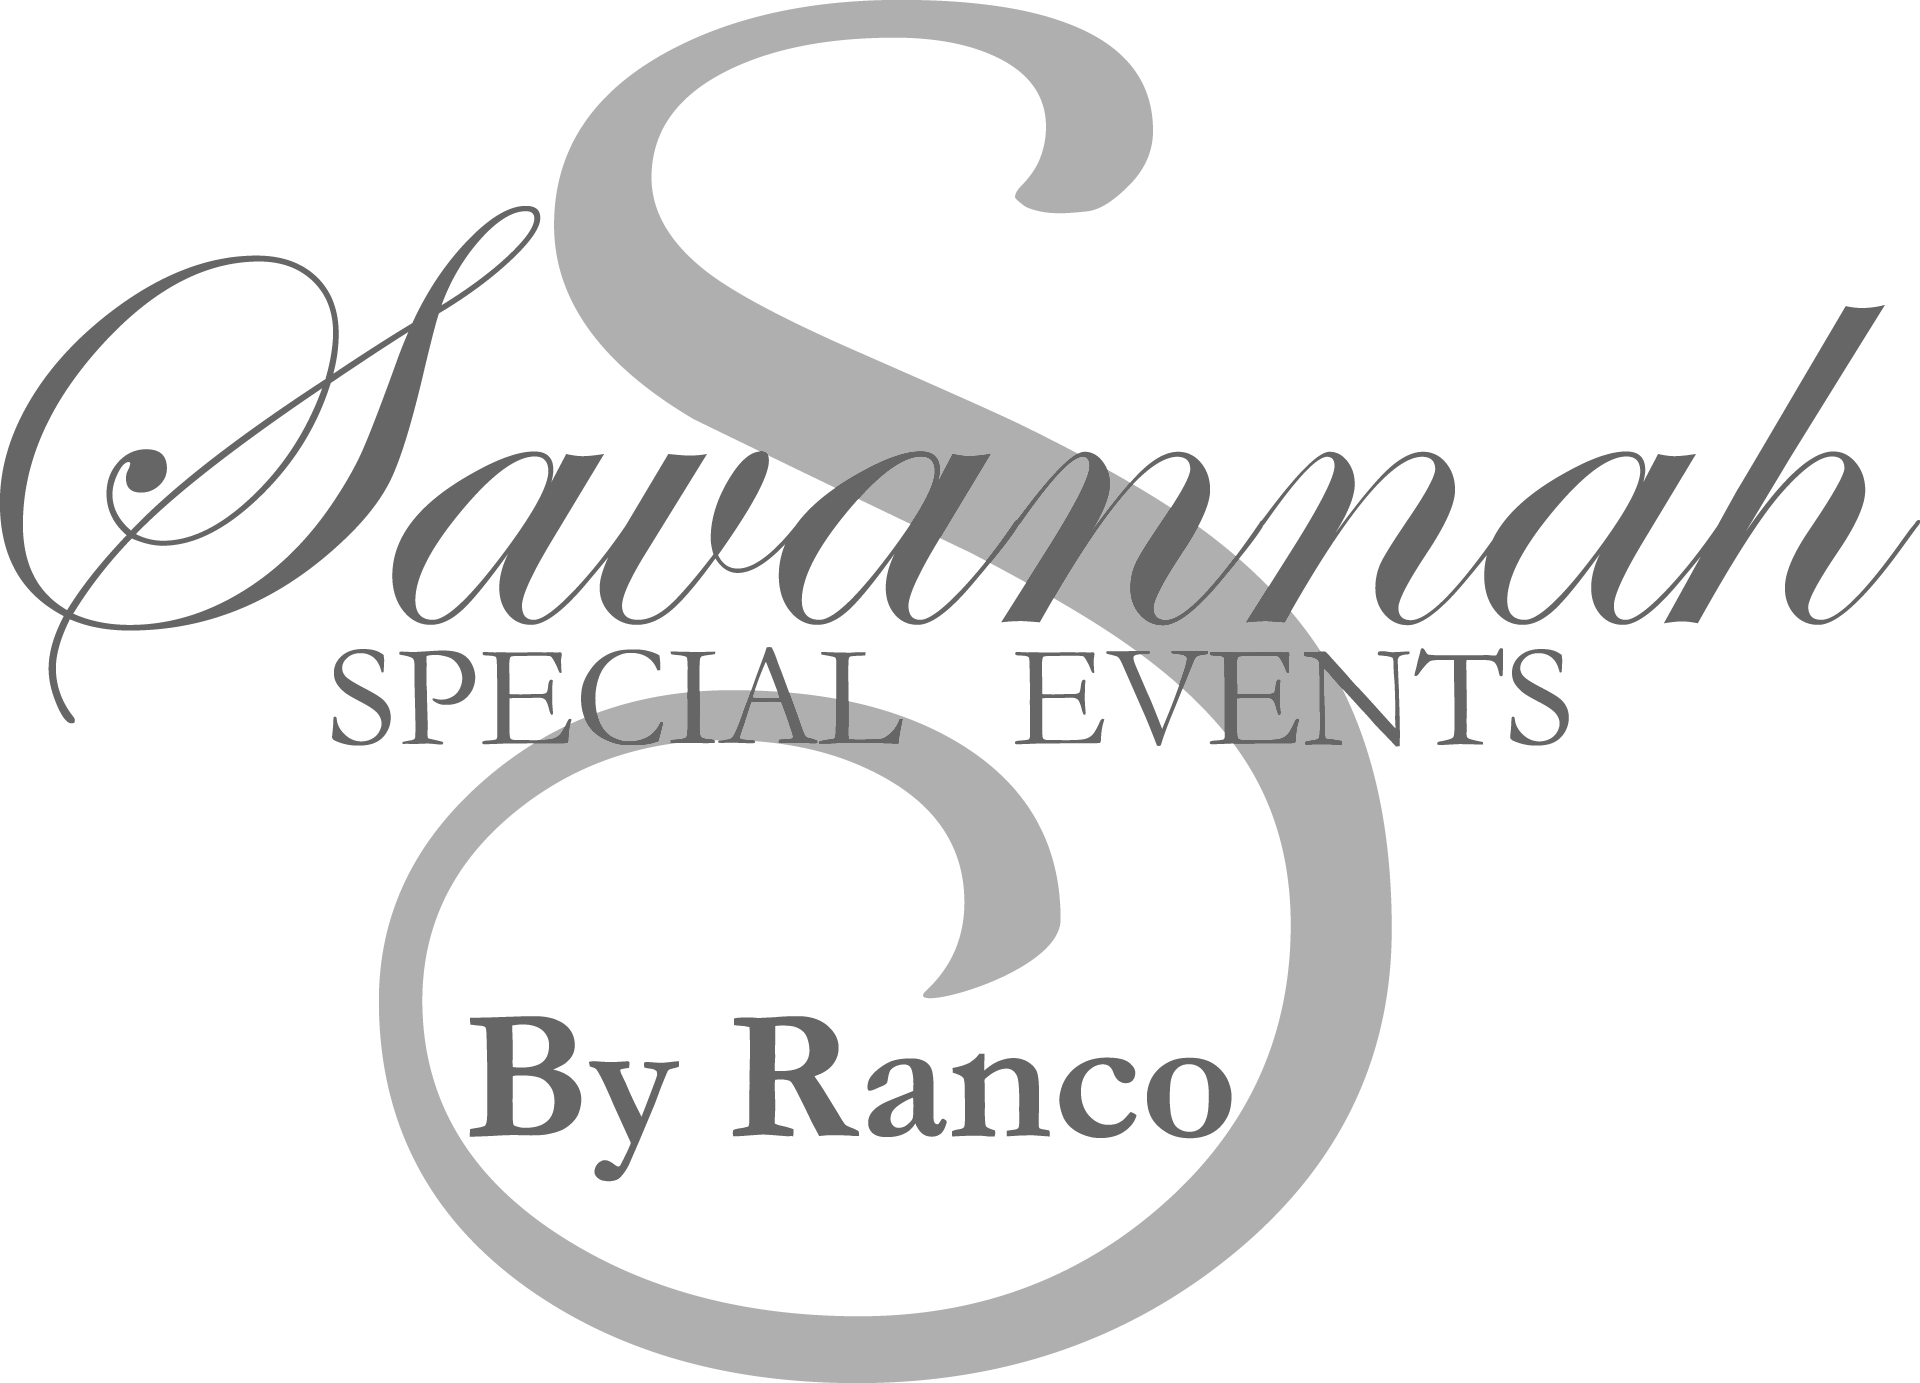 Savannah Special Events by Ranco